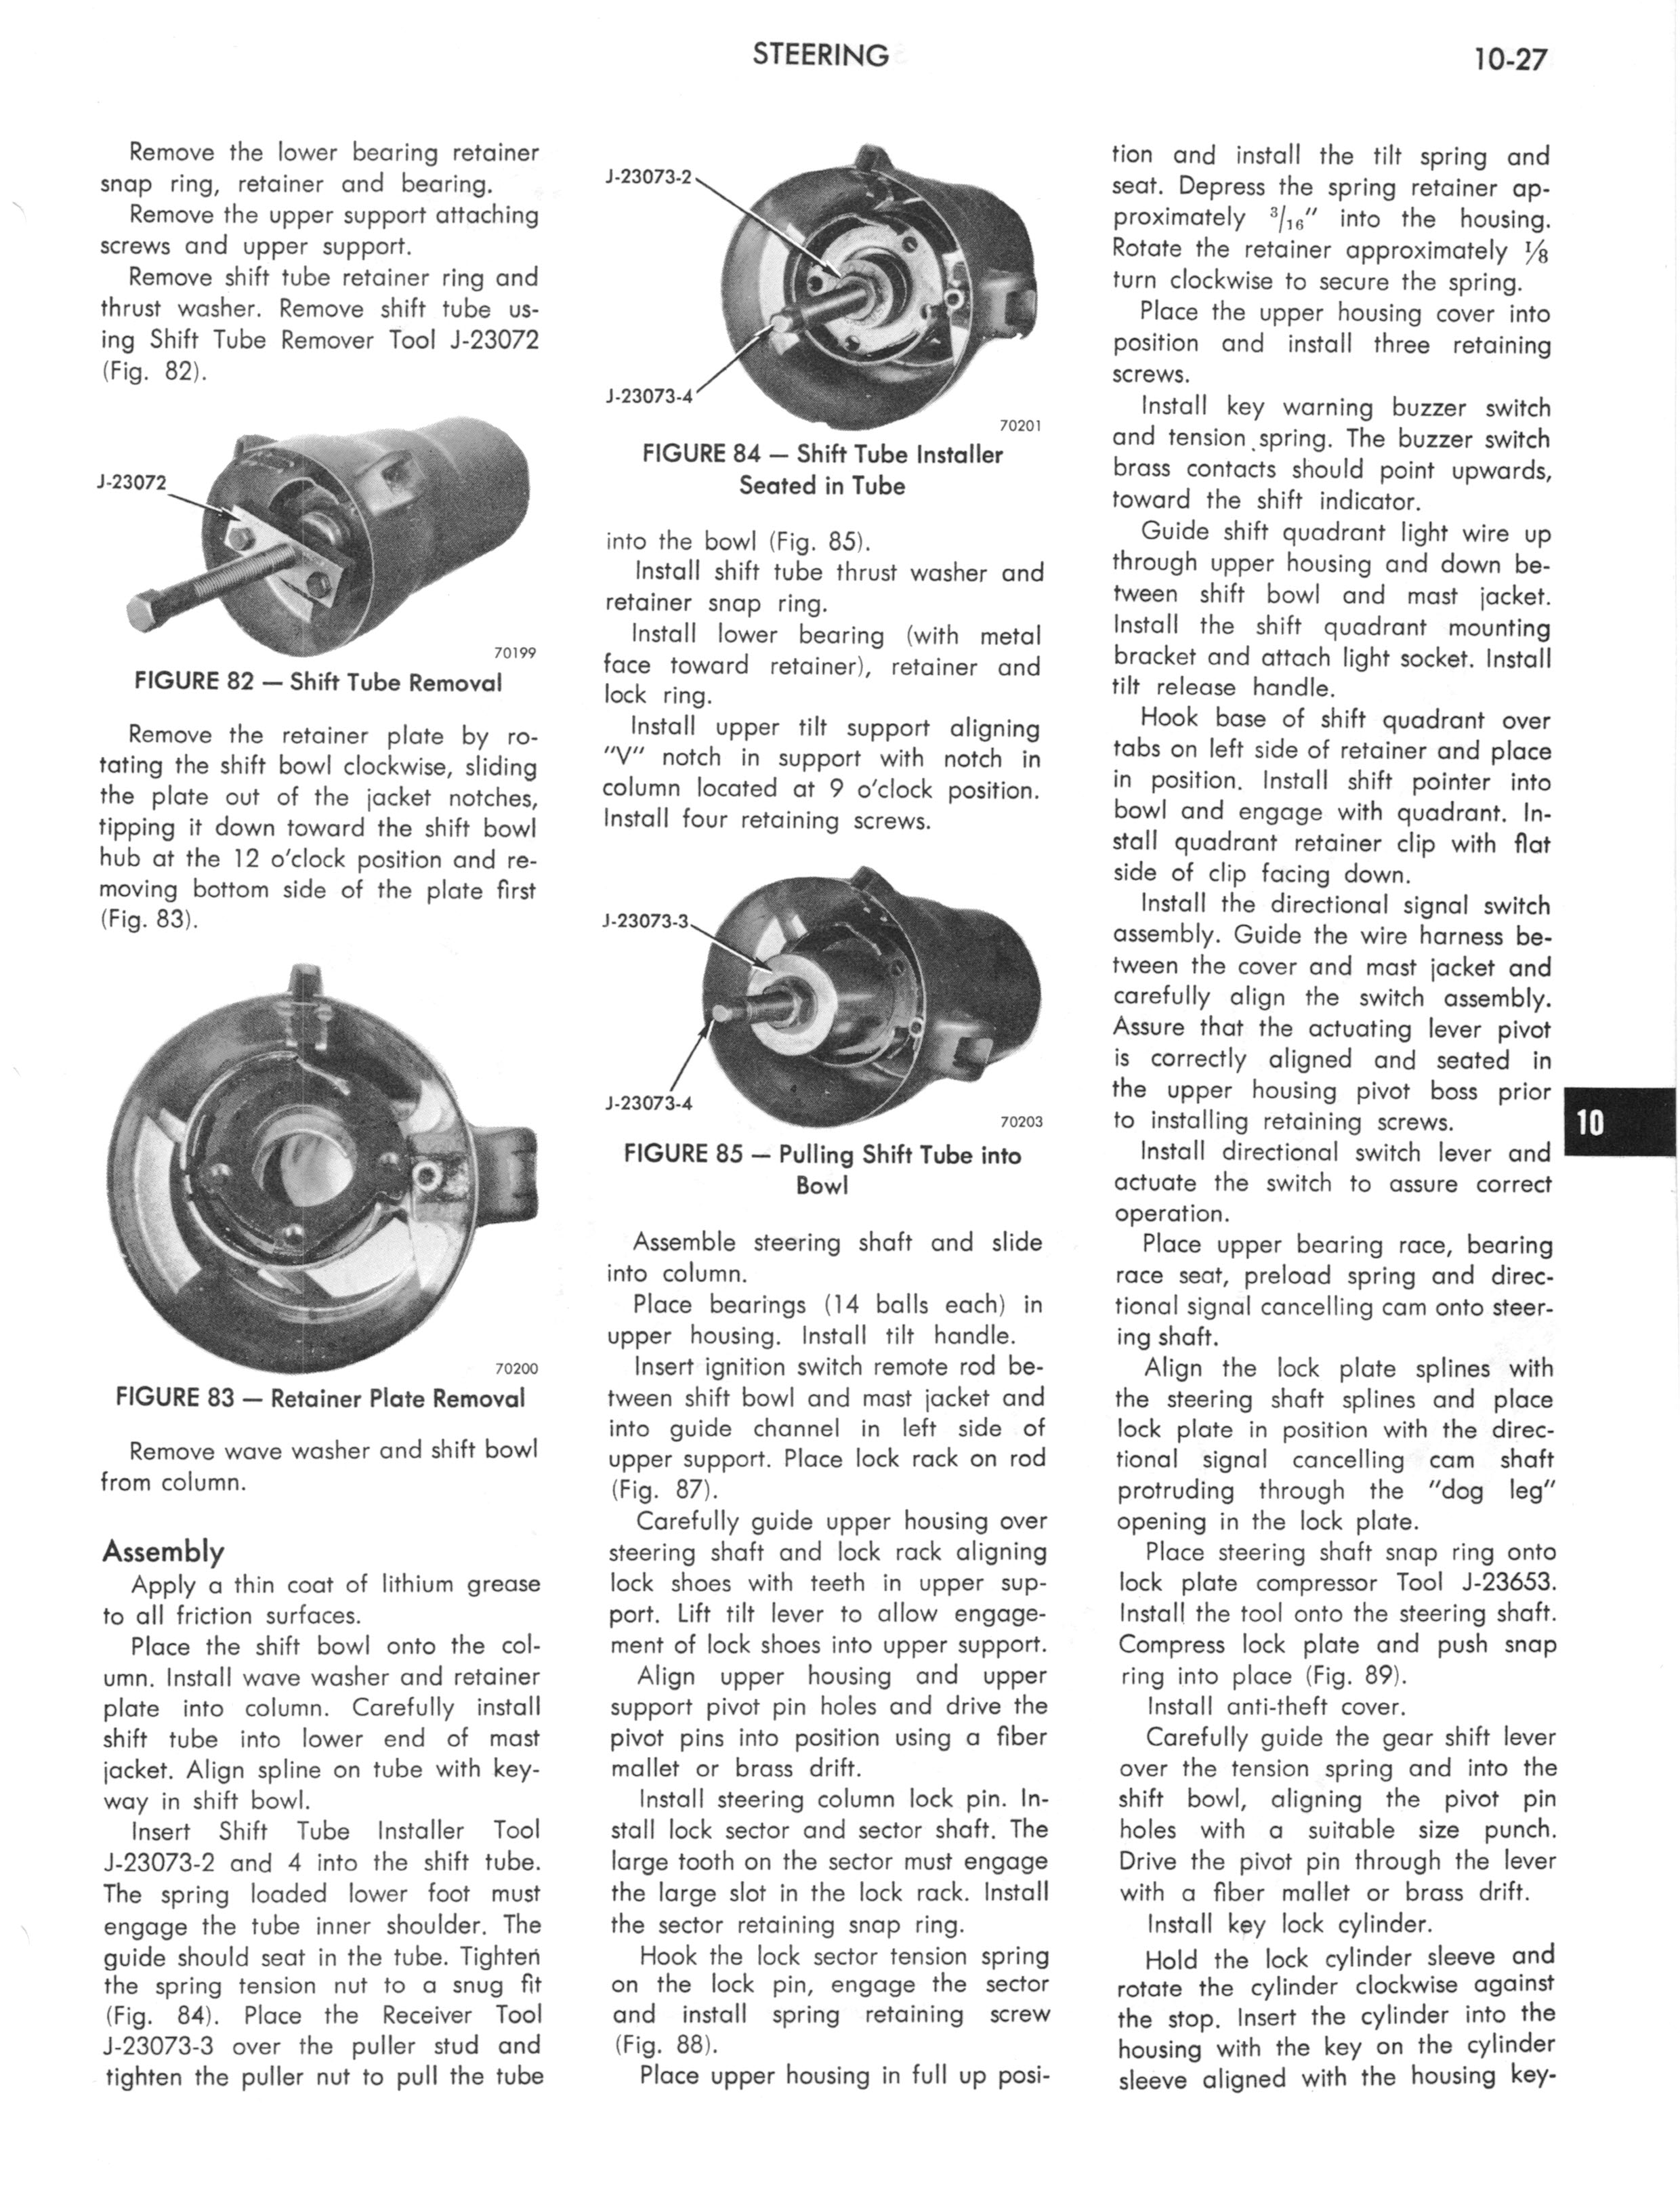 1973 AMC Technical Service Manual page 323 of 487